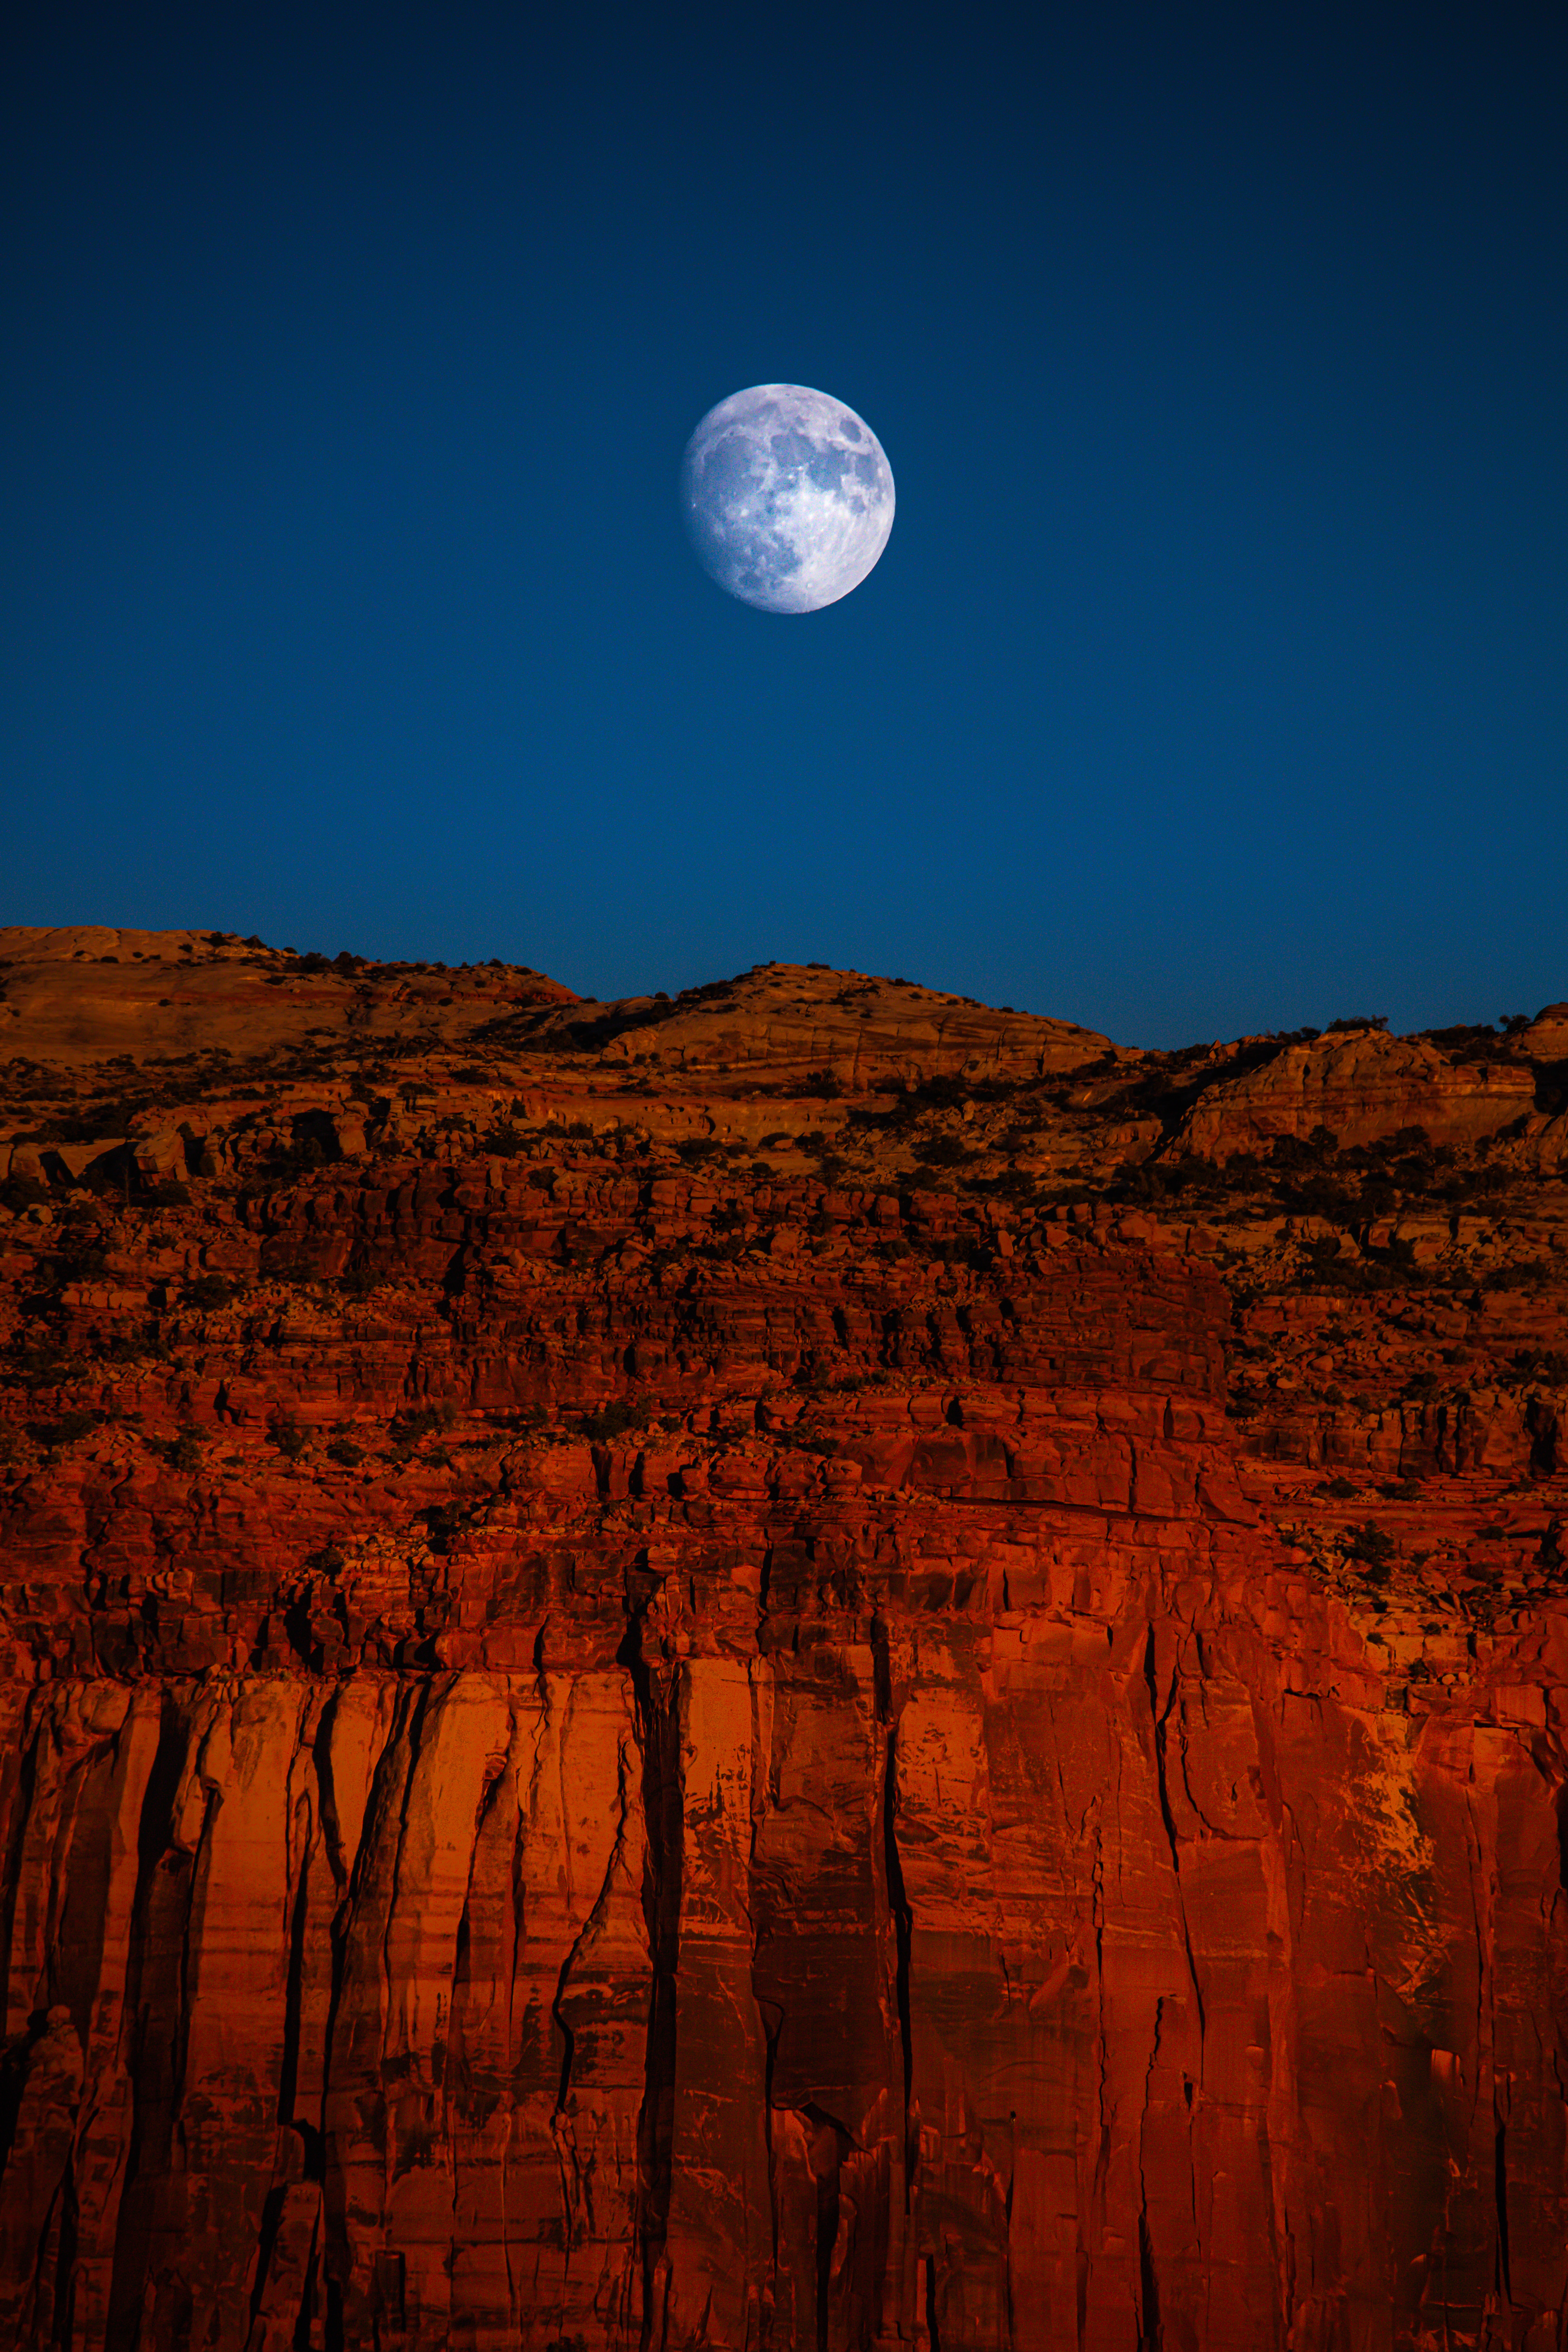 153145 download wallpaper Nature, Rock, Cliff, Moon, Canyon, Landscape screensavers and pictures for free